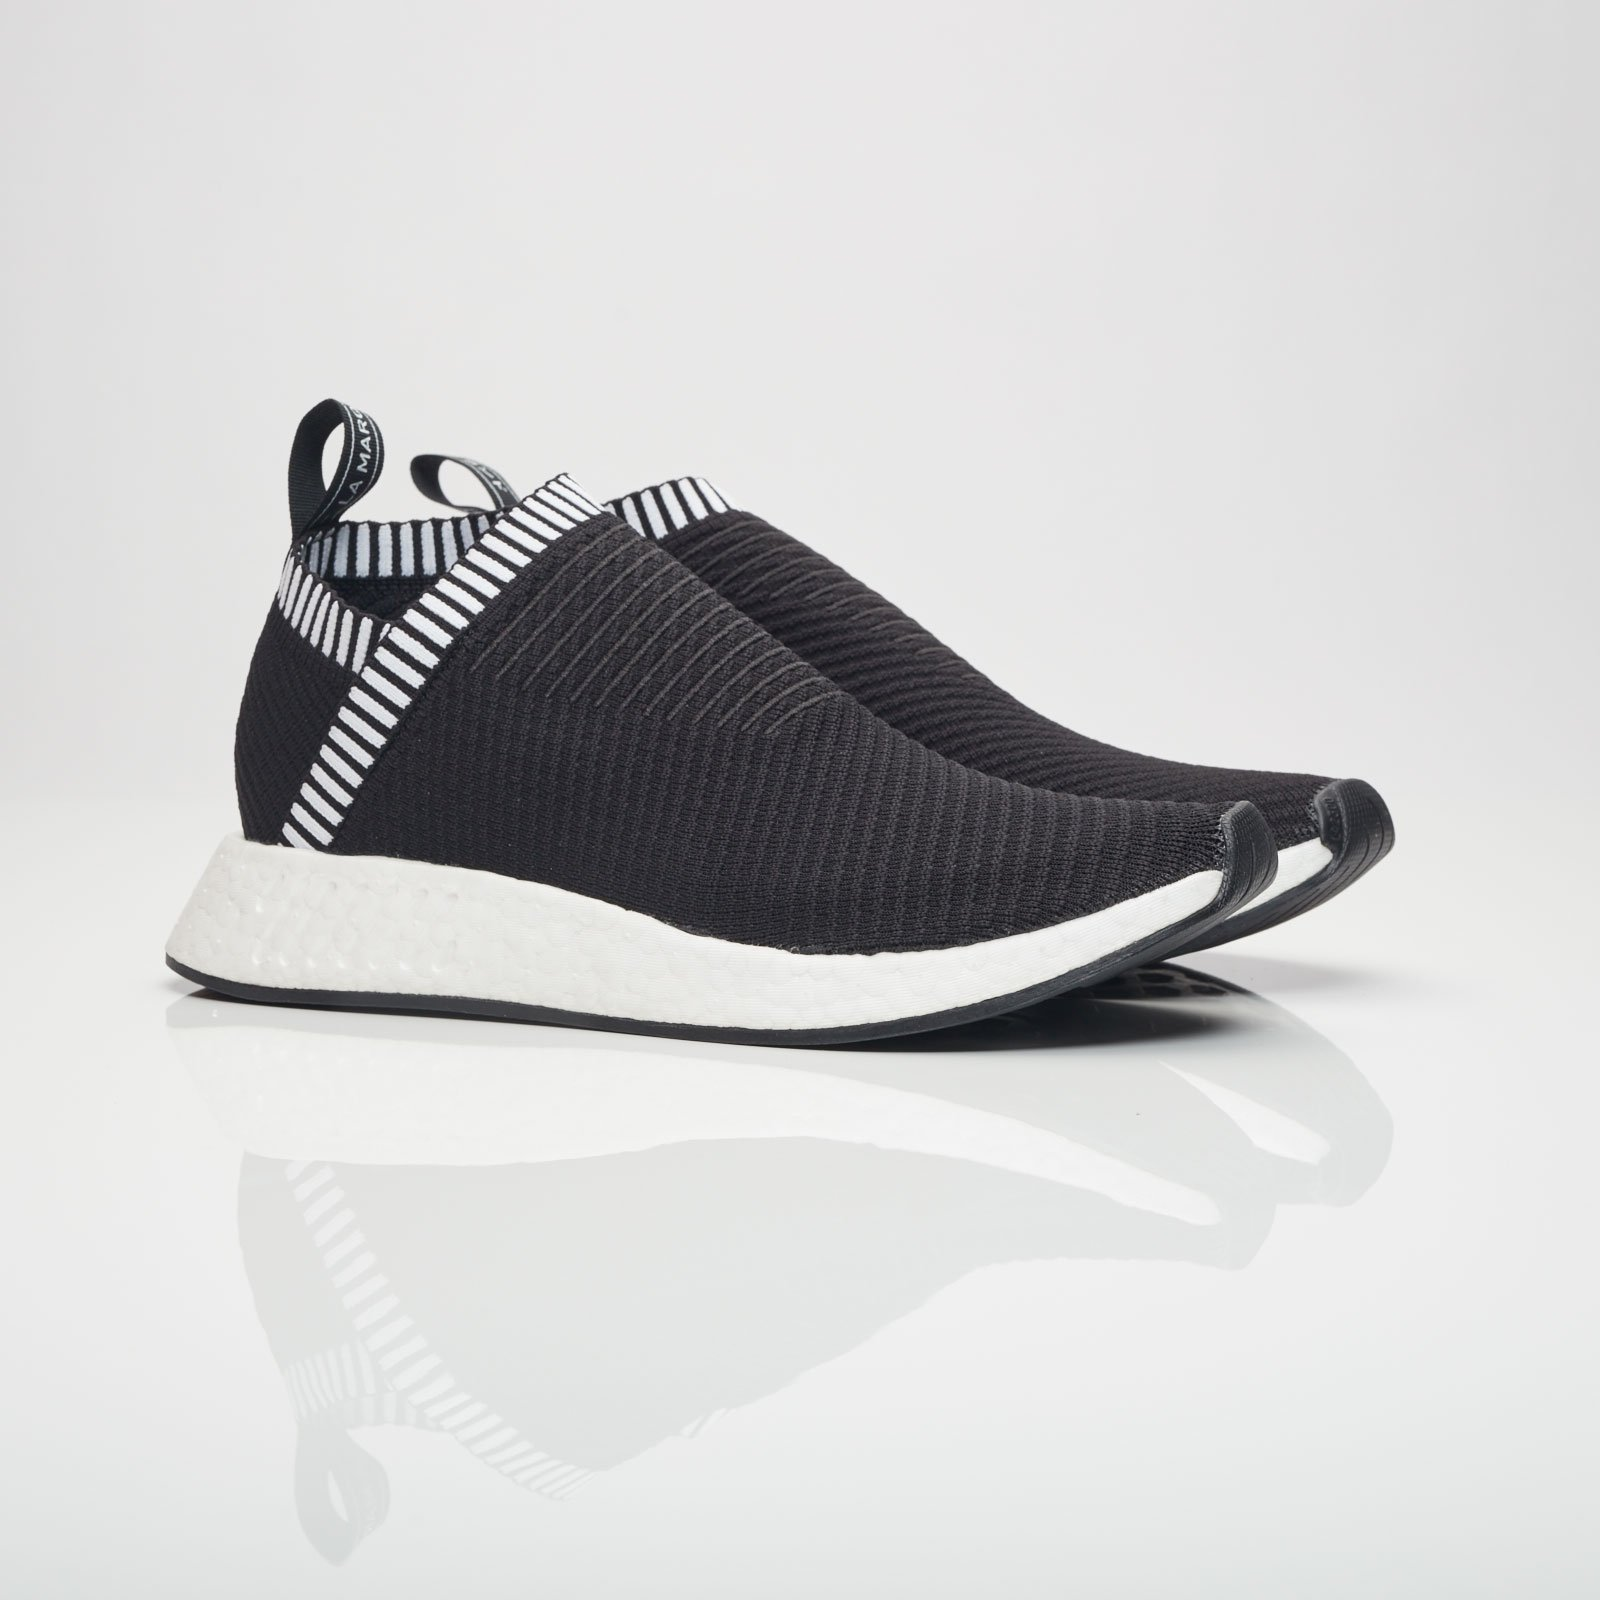 official photos f91eb 0cb4d adidas Originals NMD CS2 PK